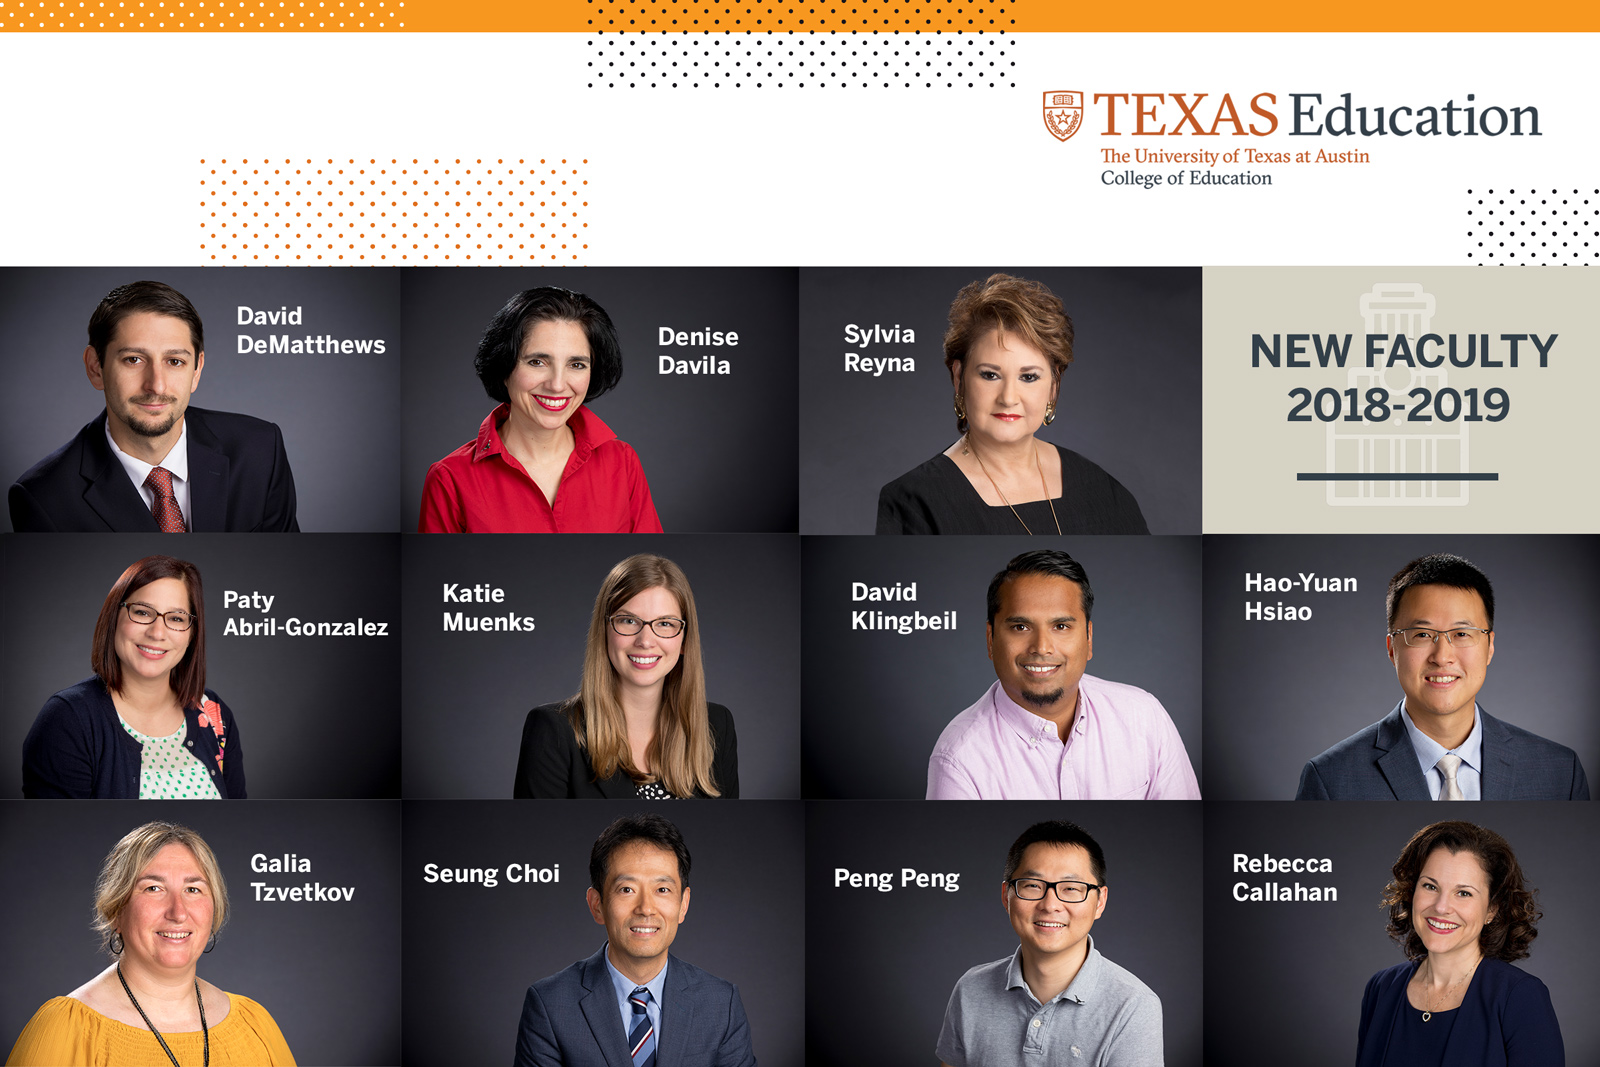 new faculty for 2018